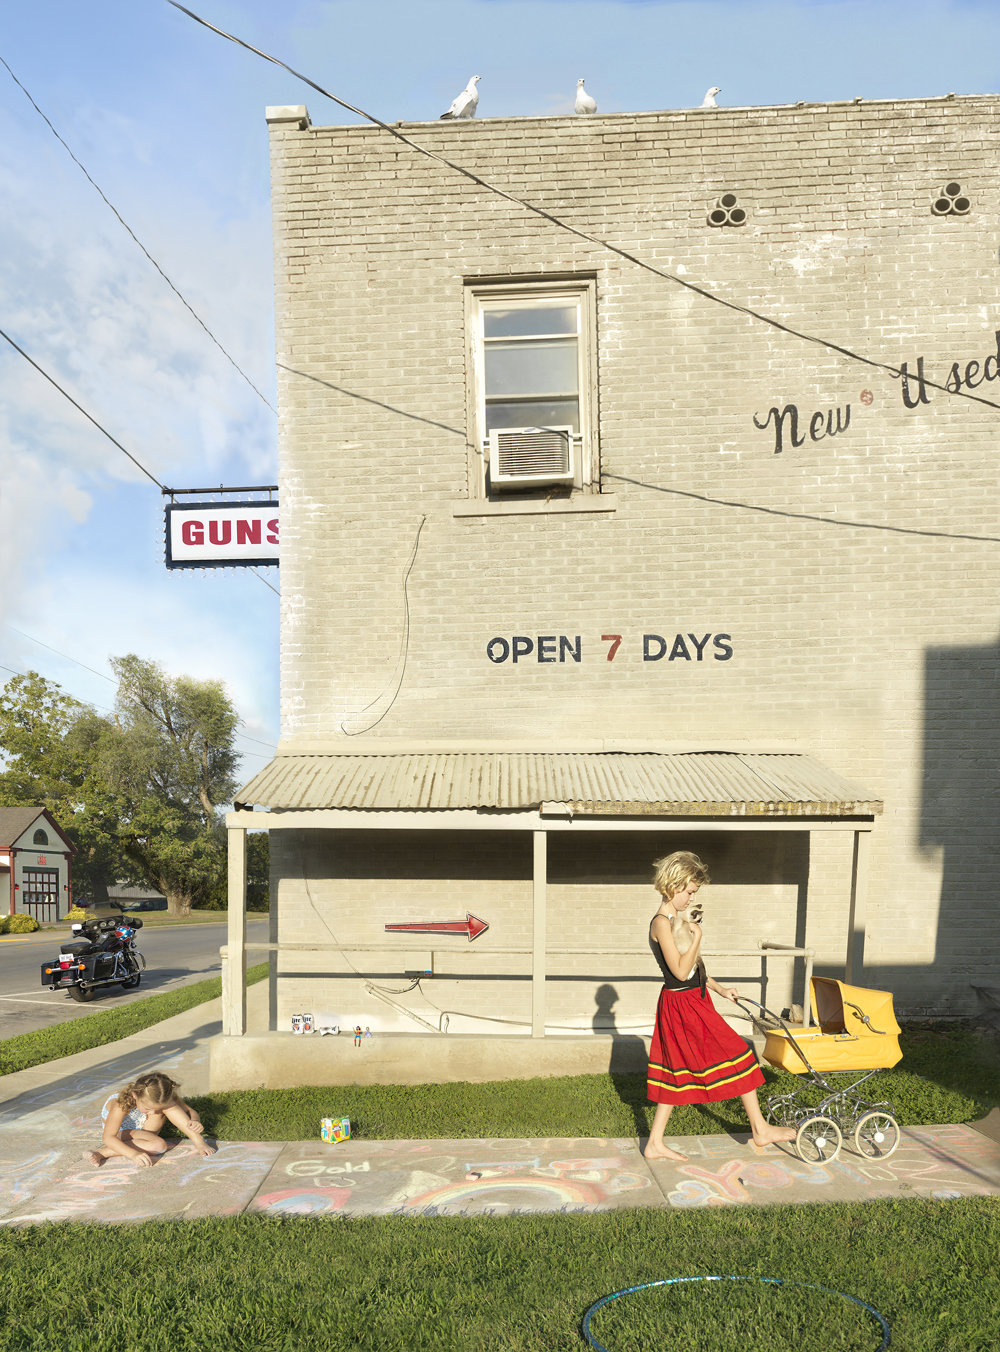 Julie Blackmon, Sidewalk, 2017, 32×22″, 42×32″, 50×40″, editions 10, 7, 5, price on request